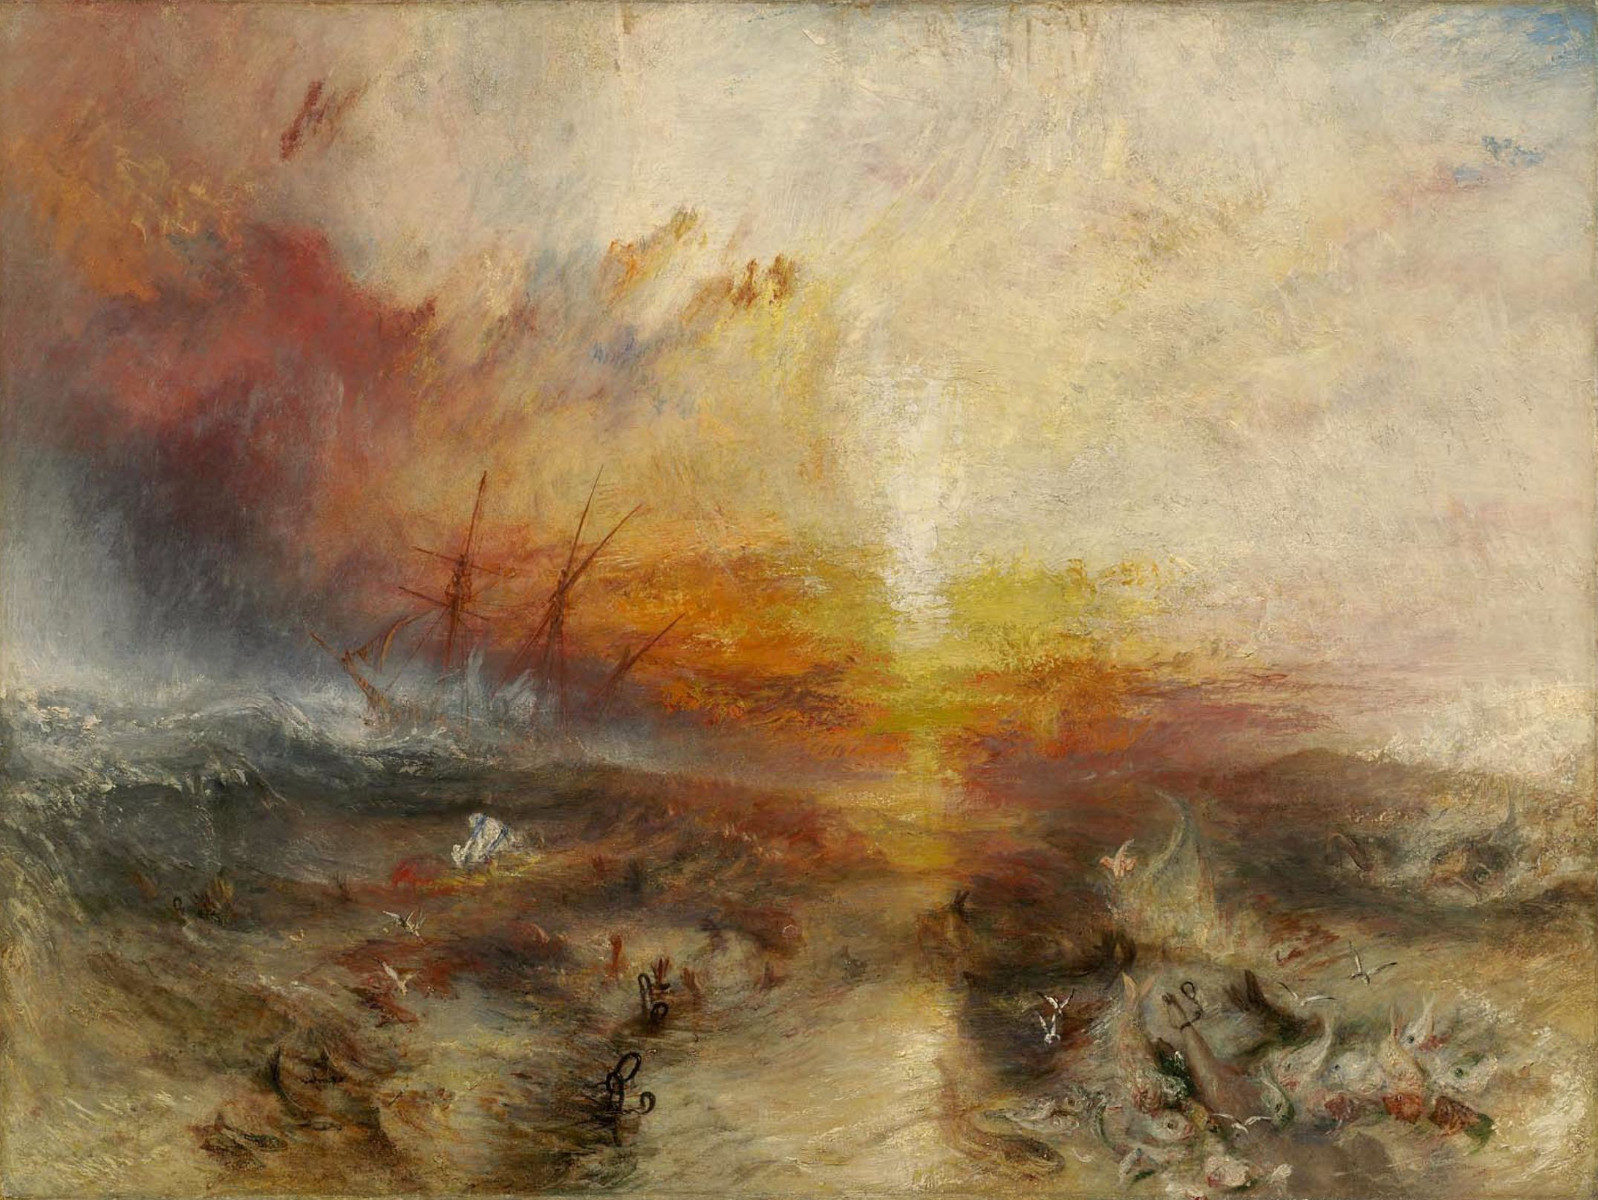 Nave di schiavi di William Turner